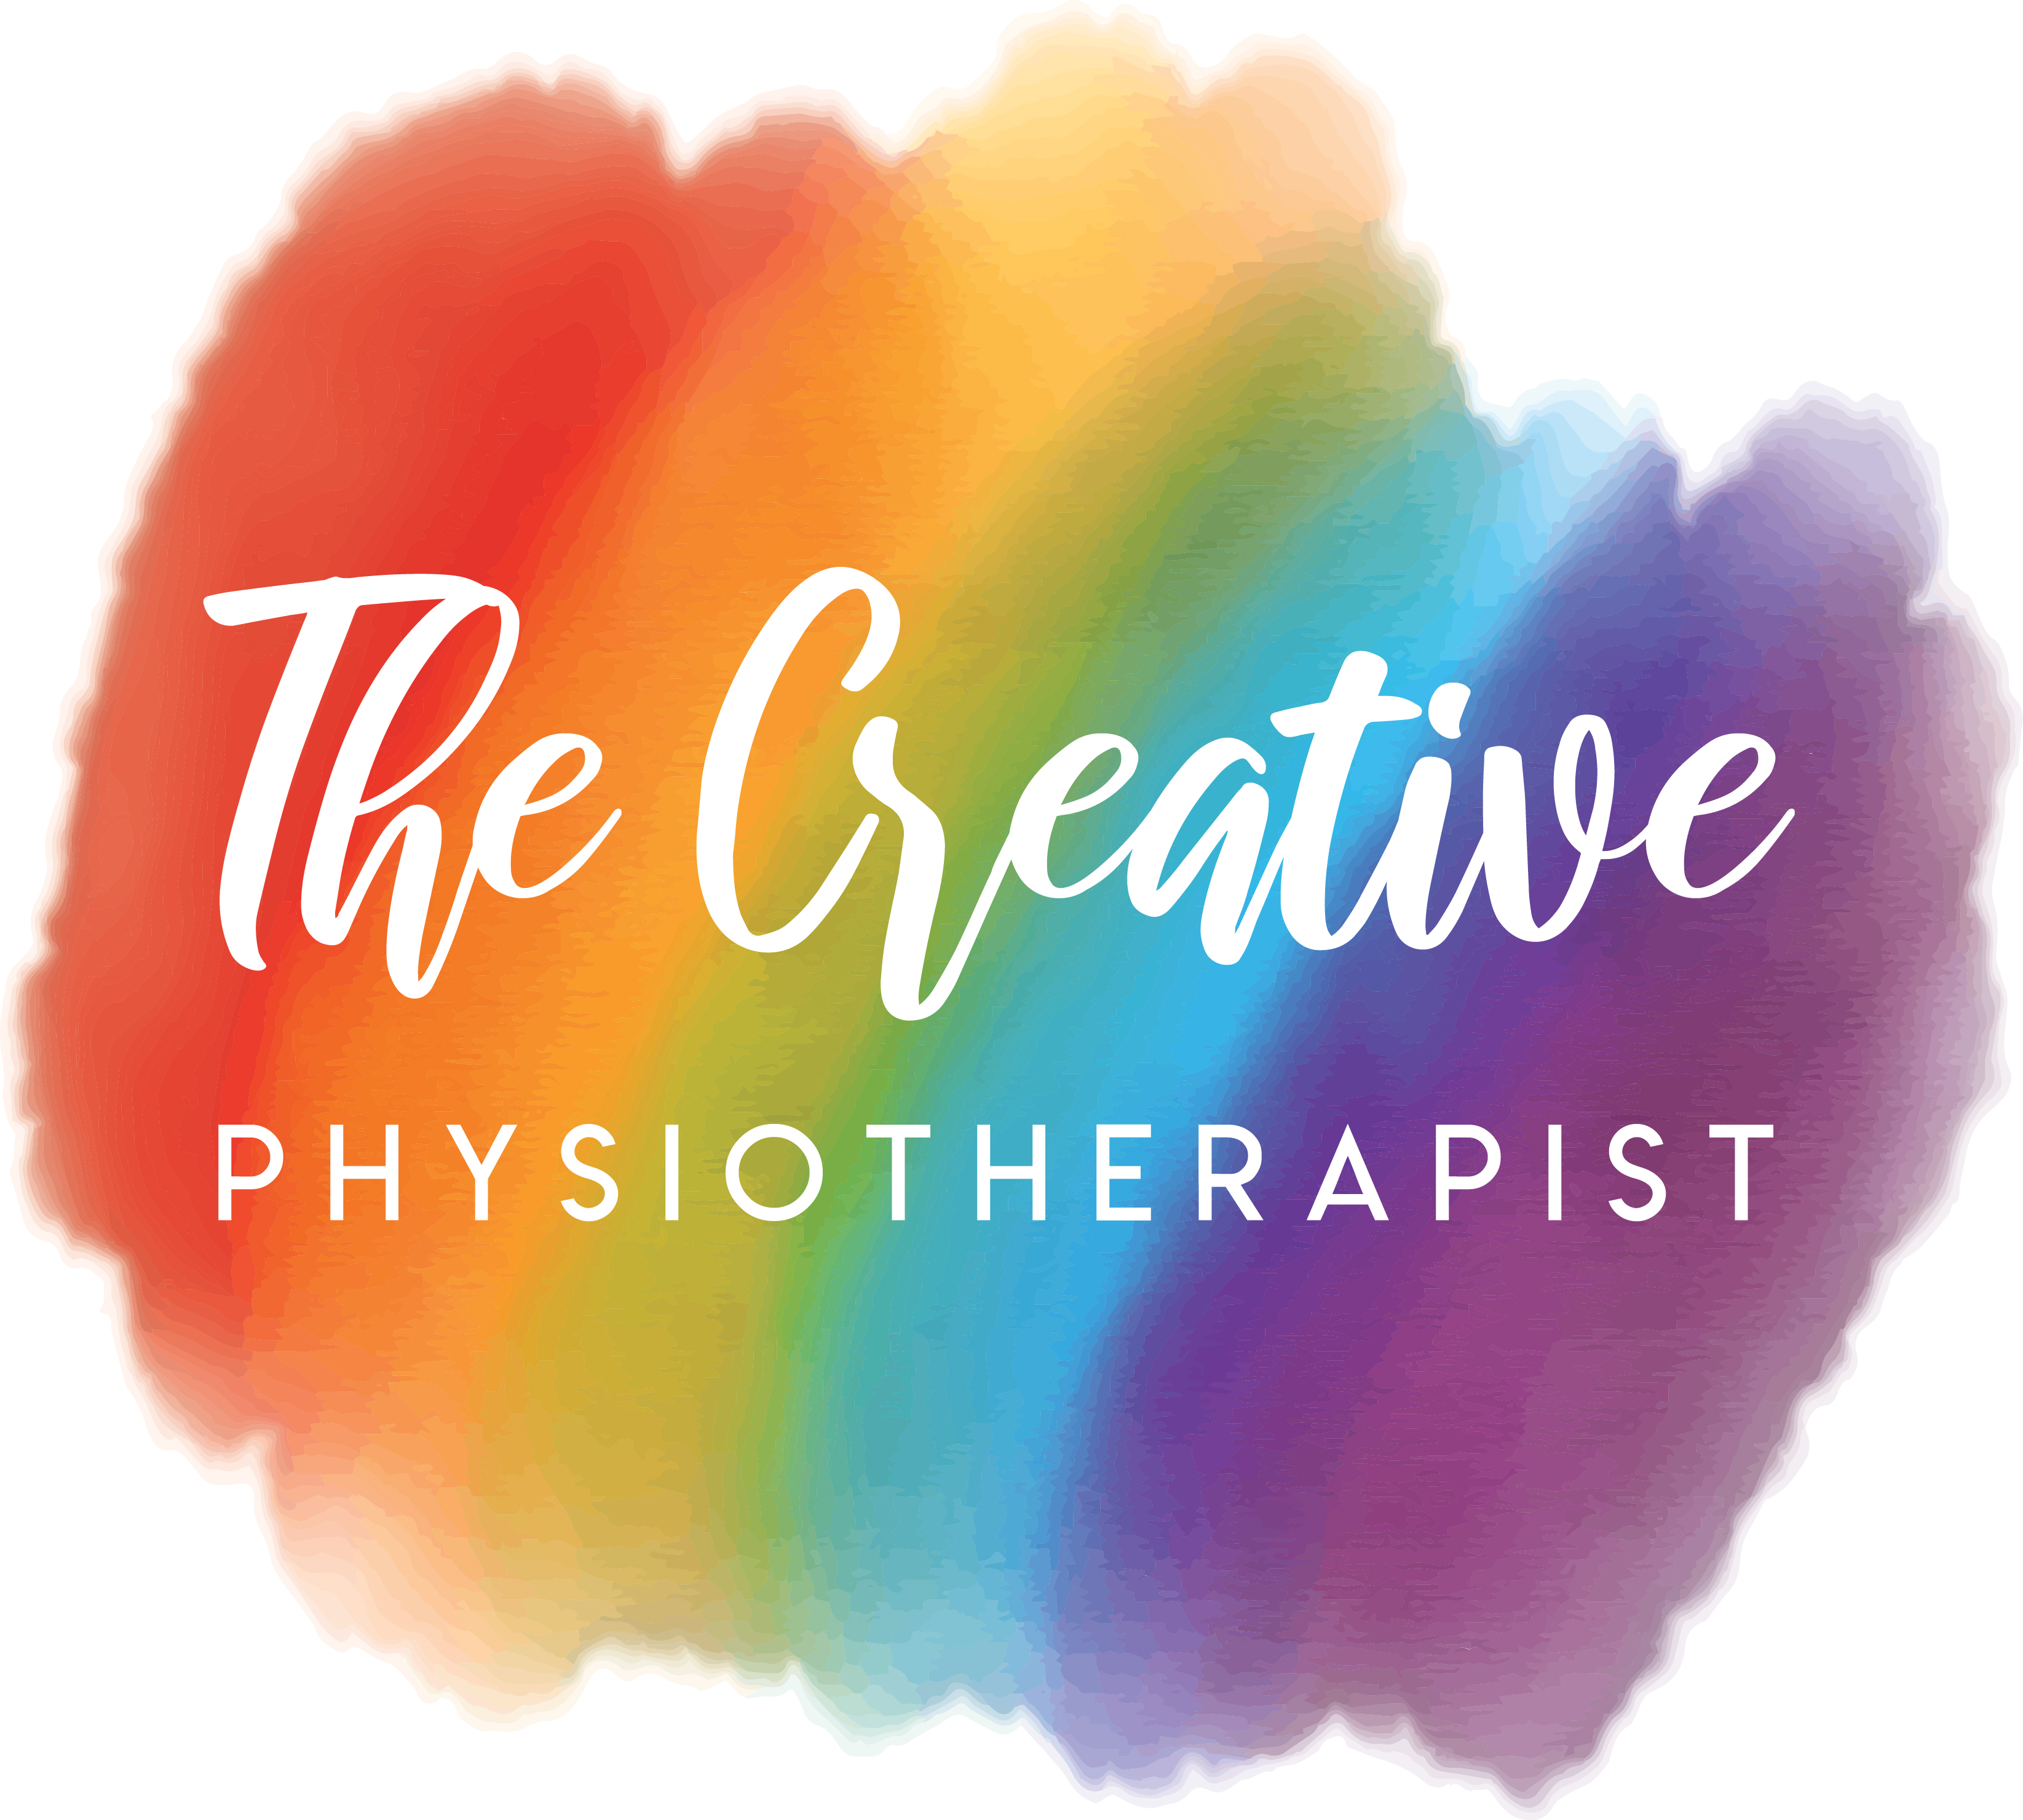 The Creative Physiotherapist